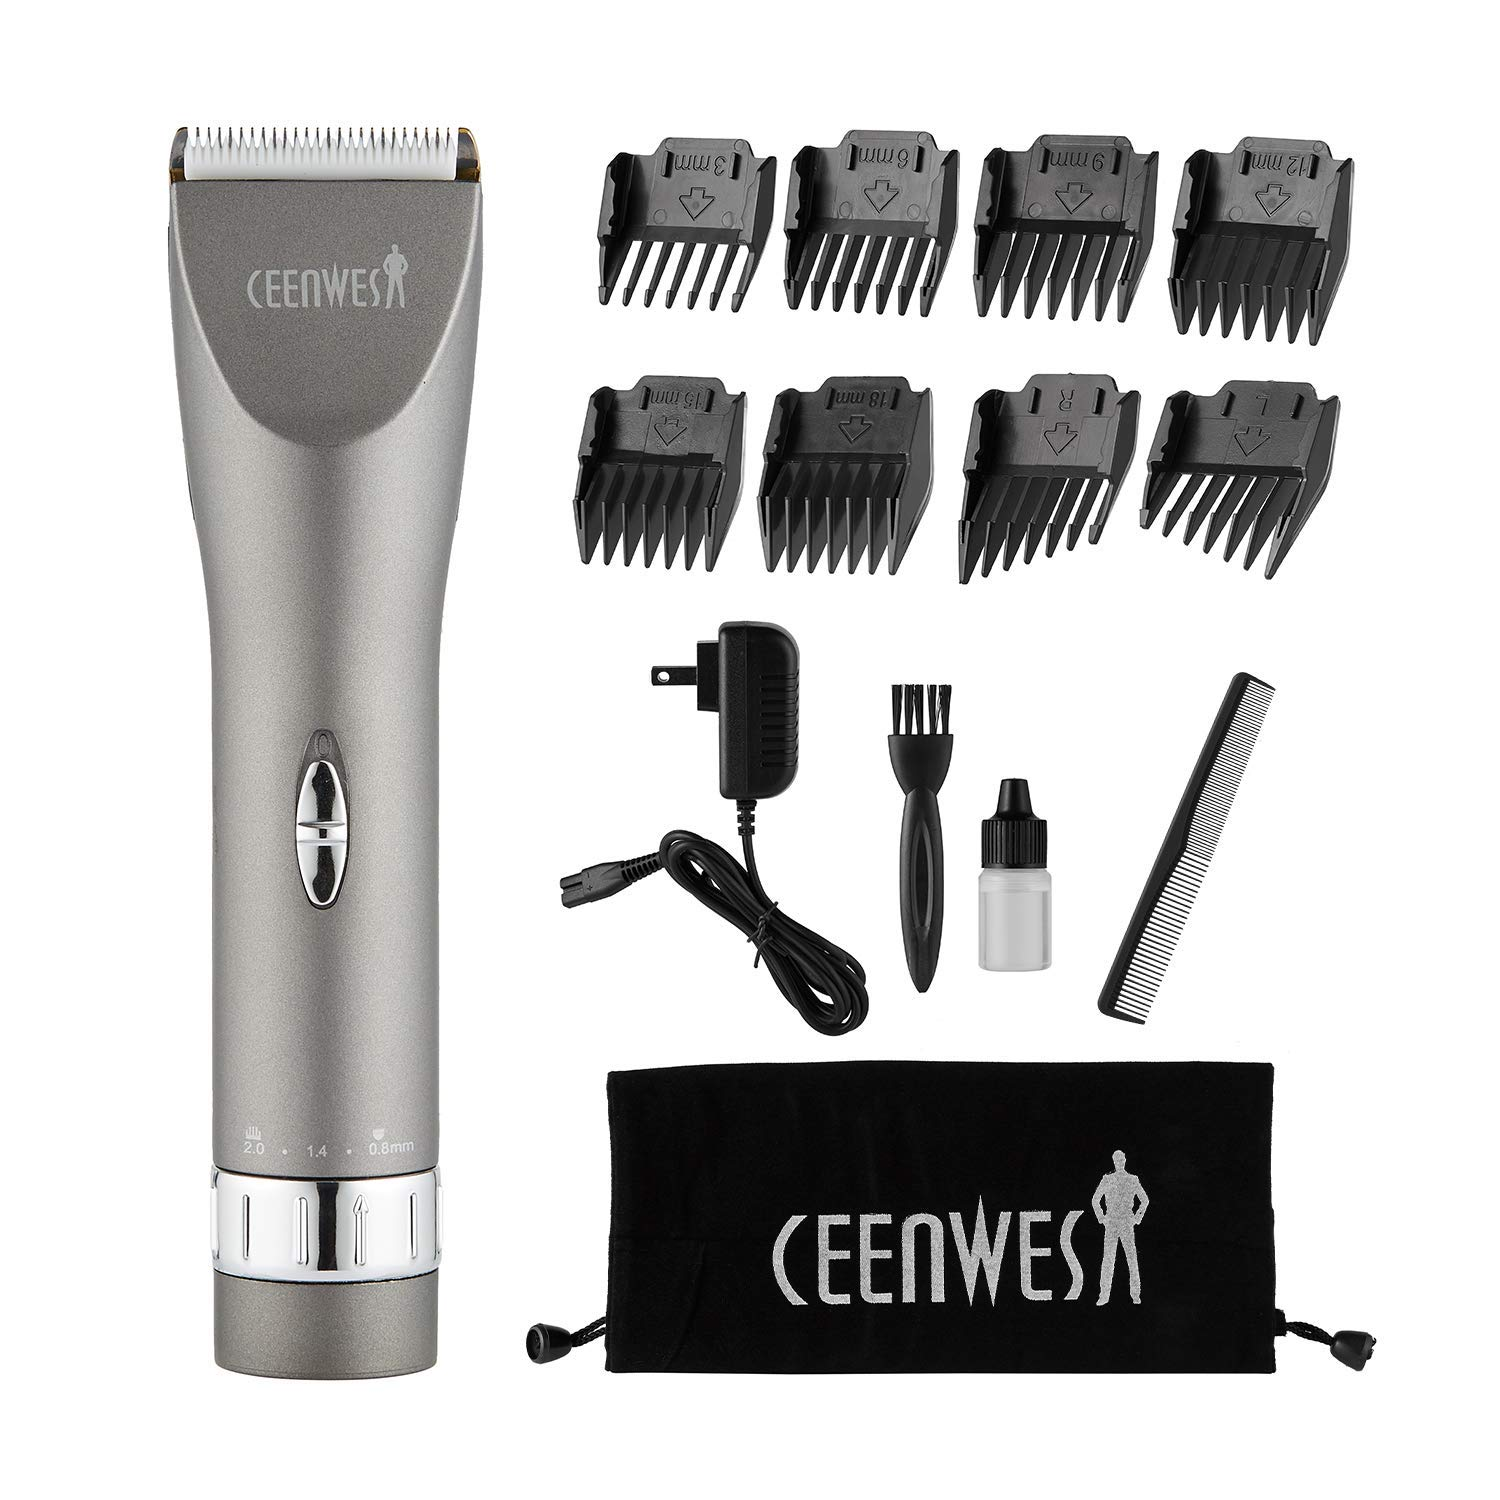 CEENWES Updated Version Professional Hair Clippers Cordless Haircut Kit Rechargeable Hair Trimmer Haircut Grooming kit with 8 Combs & Carrying Bag for Men/Father/Husband/Boyfriend